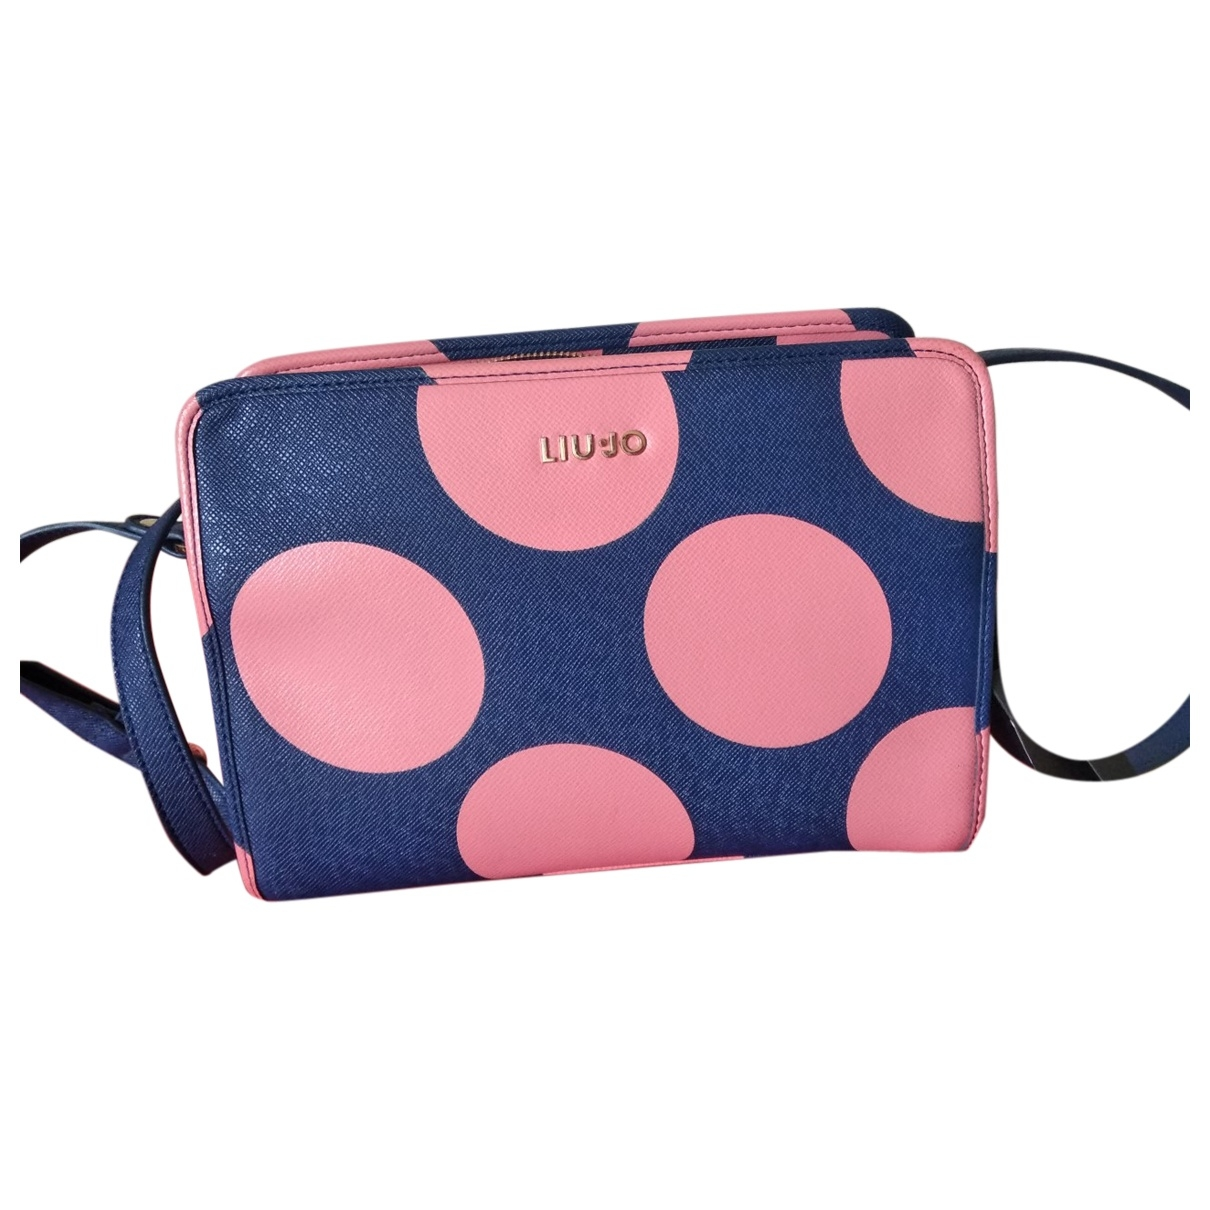 Liu.jo \N Navy handbag for Women \N